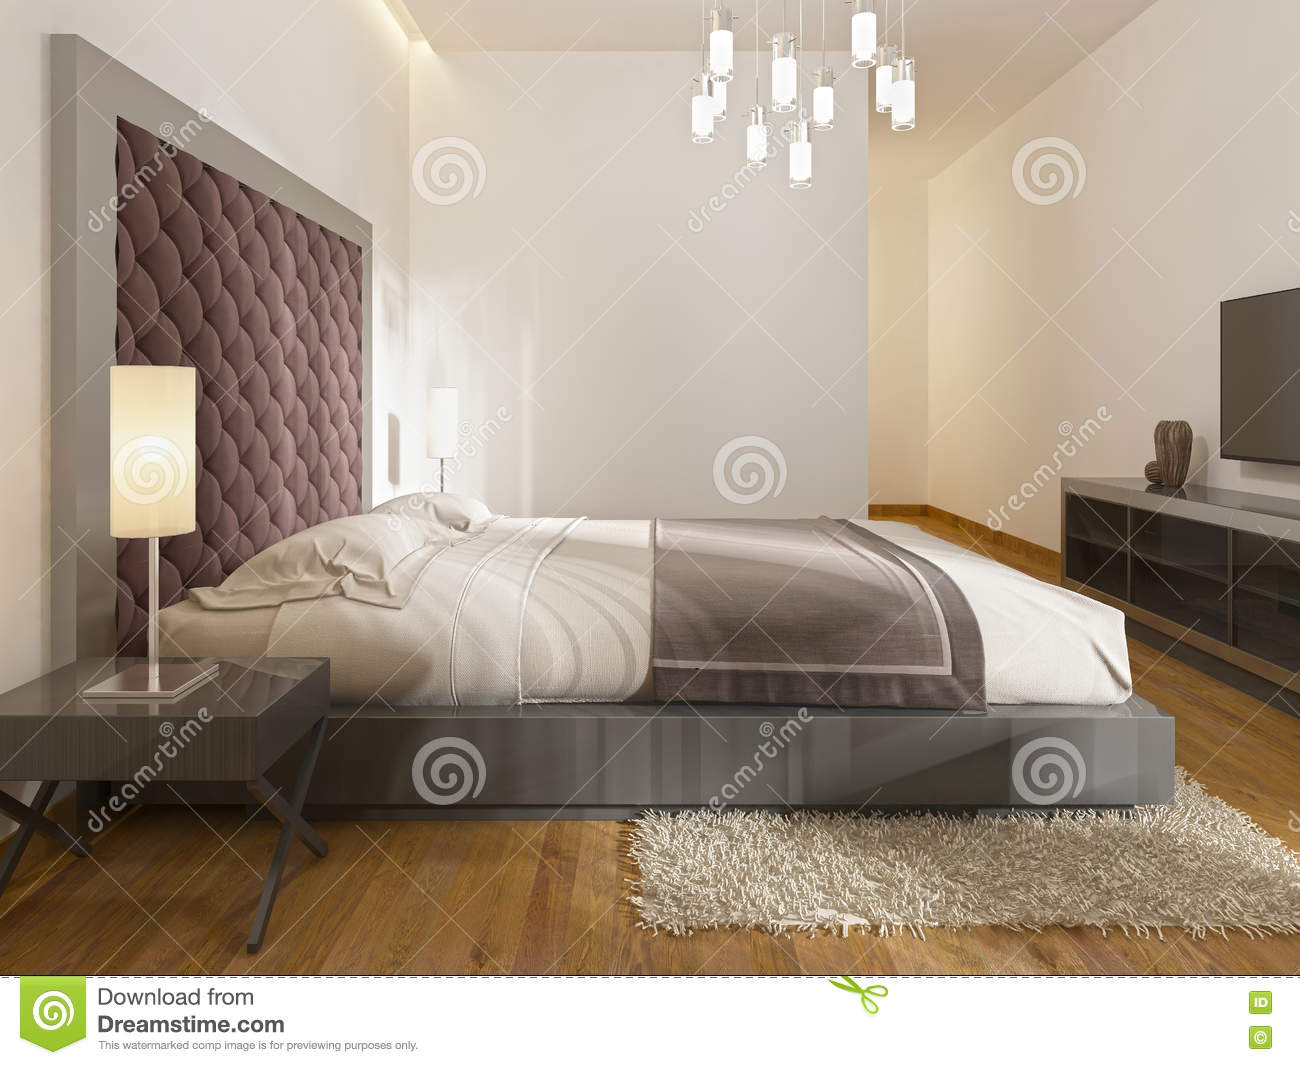 A luxury hotel room in art deco stock illustration image 79491563 - Beautiful snooze bedroom suites packing comfort in style ...